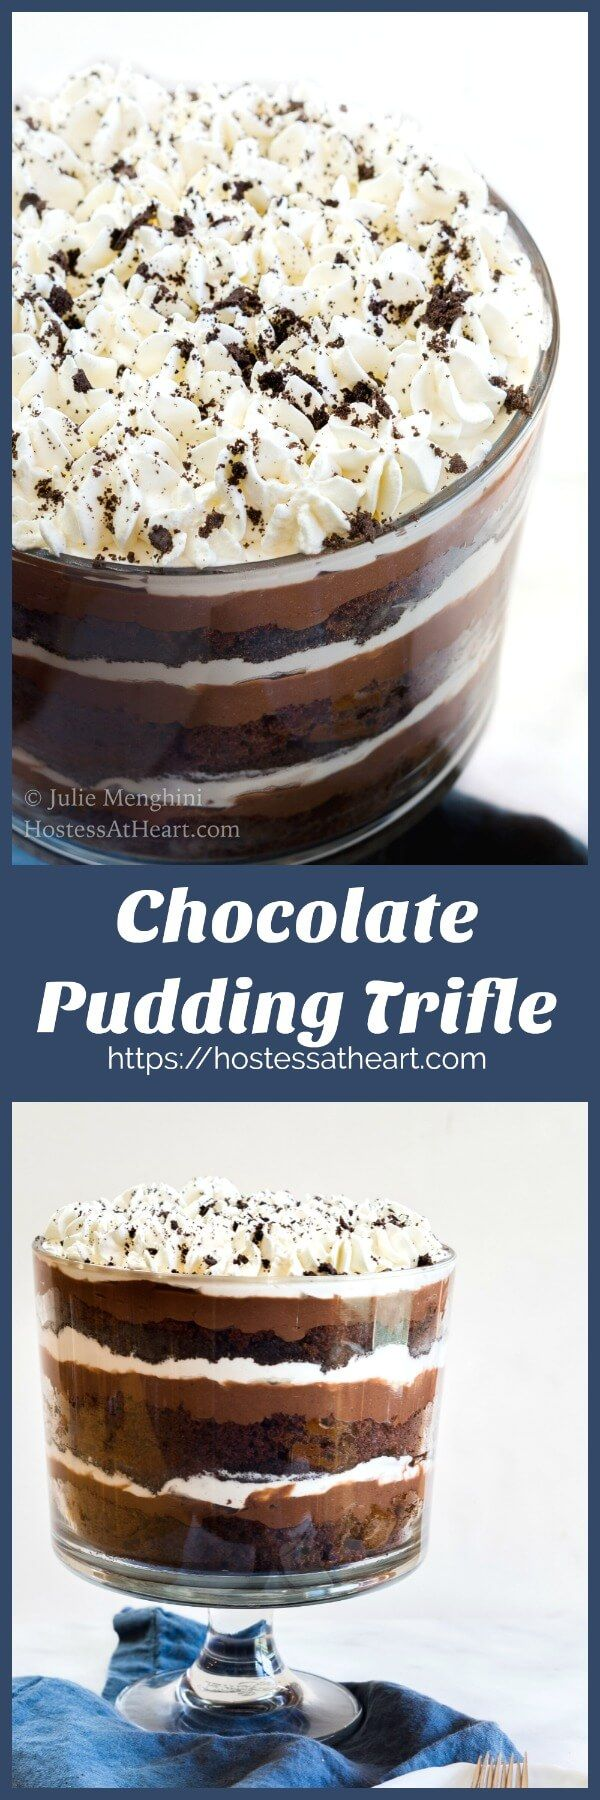 This Chocolate Pudding Trifle has delicious layers of chocolate cake, pudding, cookie crumbs and whipped cream. It is dreamy and creamy goodness! | HostessAtHeart.com #Chocolate Dessert #Comfortfood #recipe #sweets #homemade | Chocolate Desserts | Easy Desserts | Party Food via @HostessAtHeart